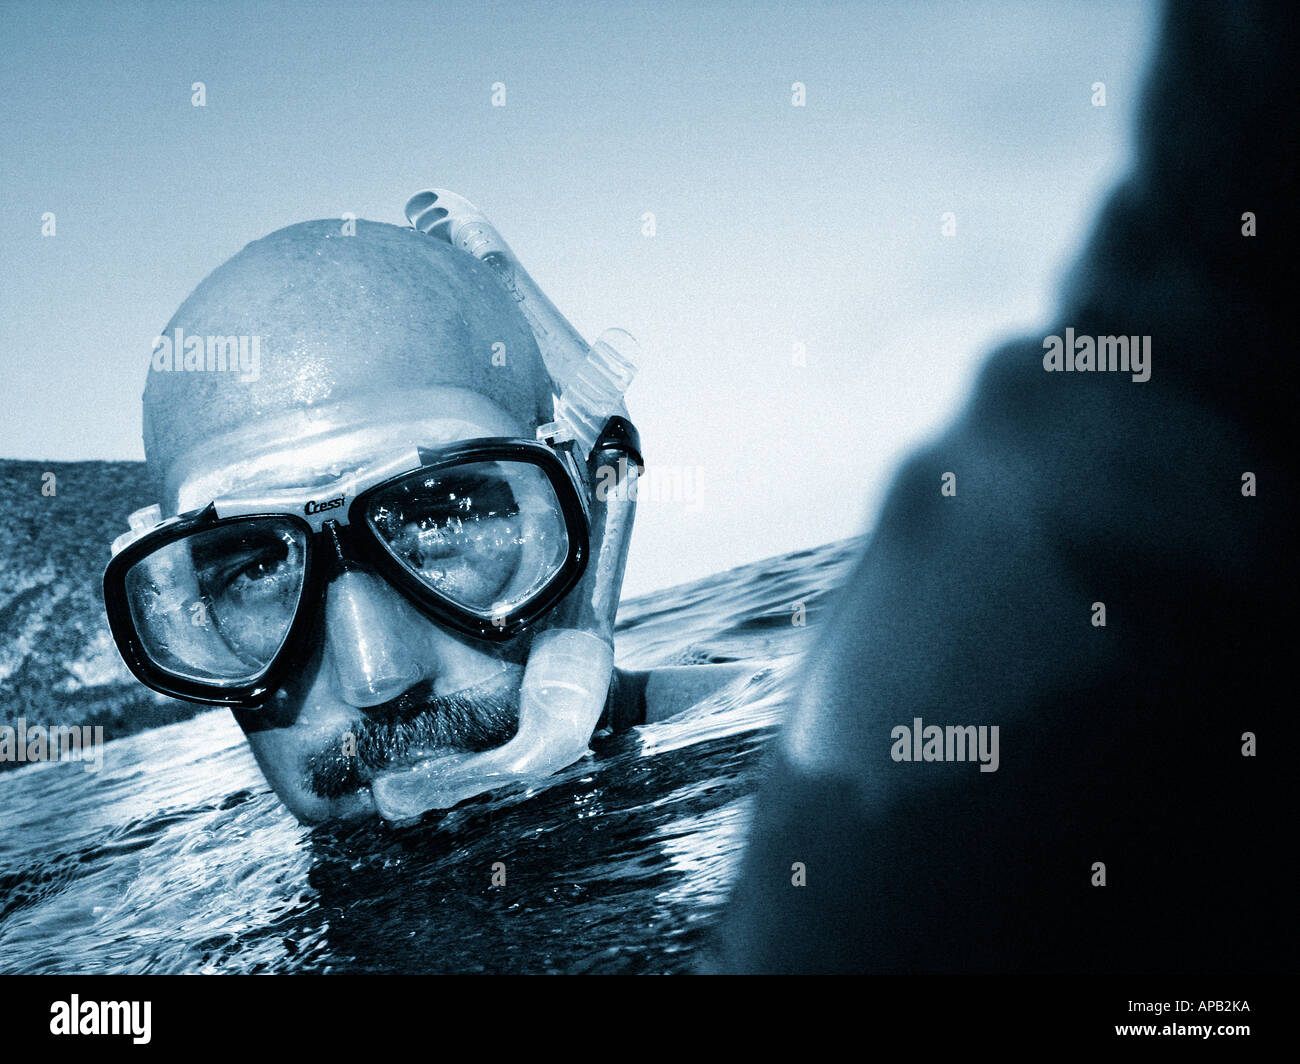 Black and white image of a man snorkelling in the sea - Stock Image